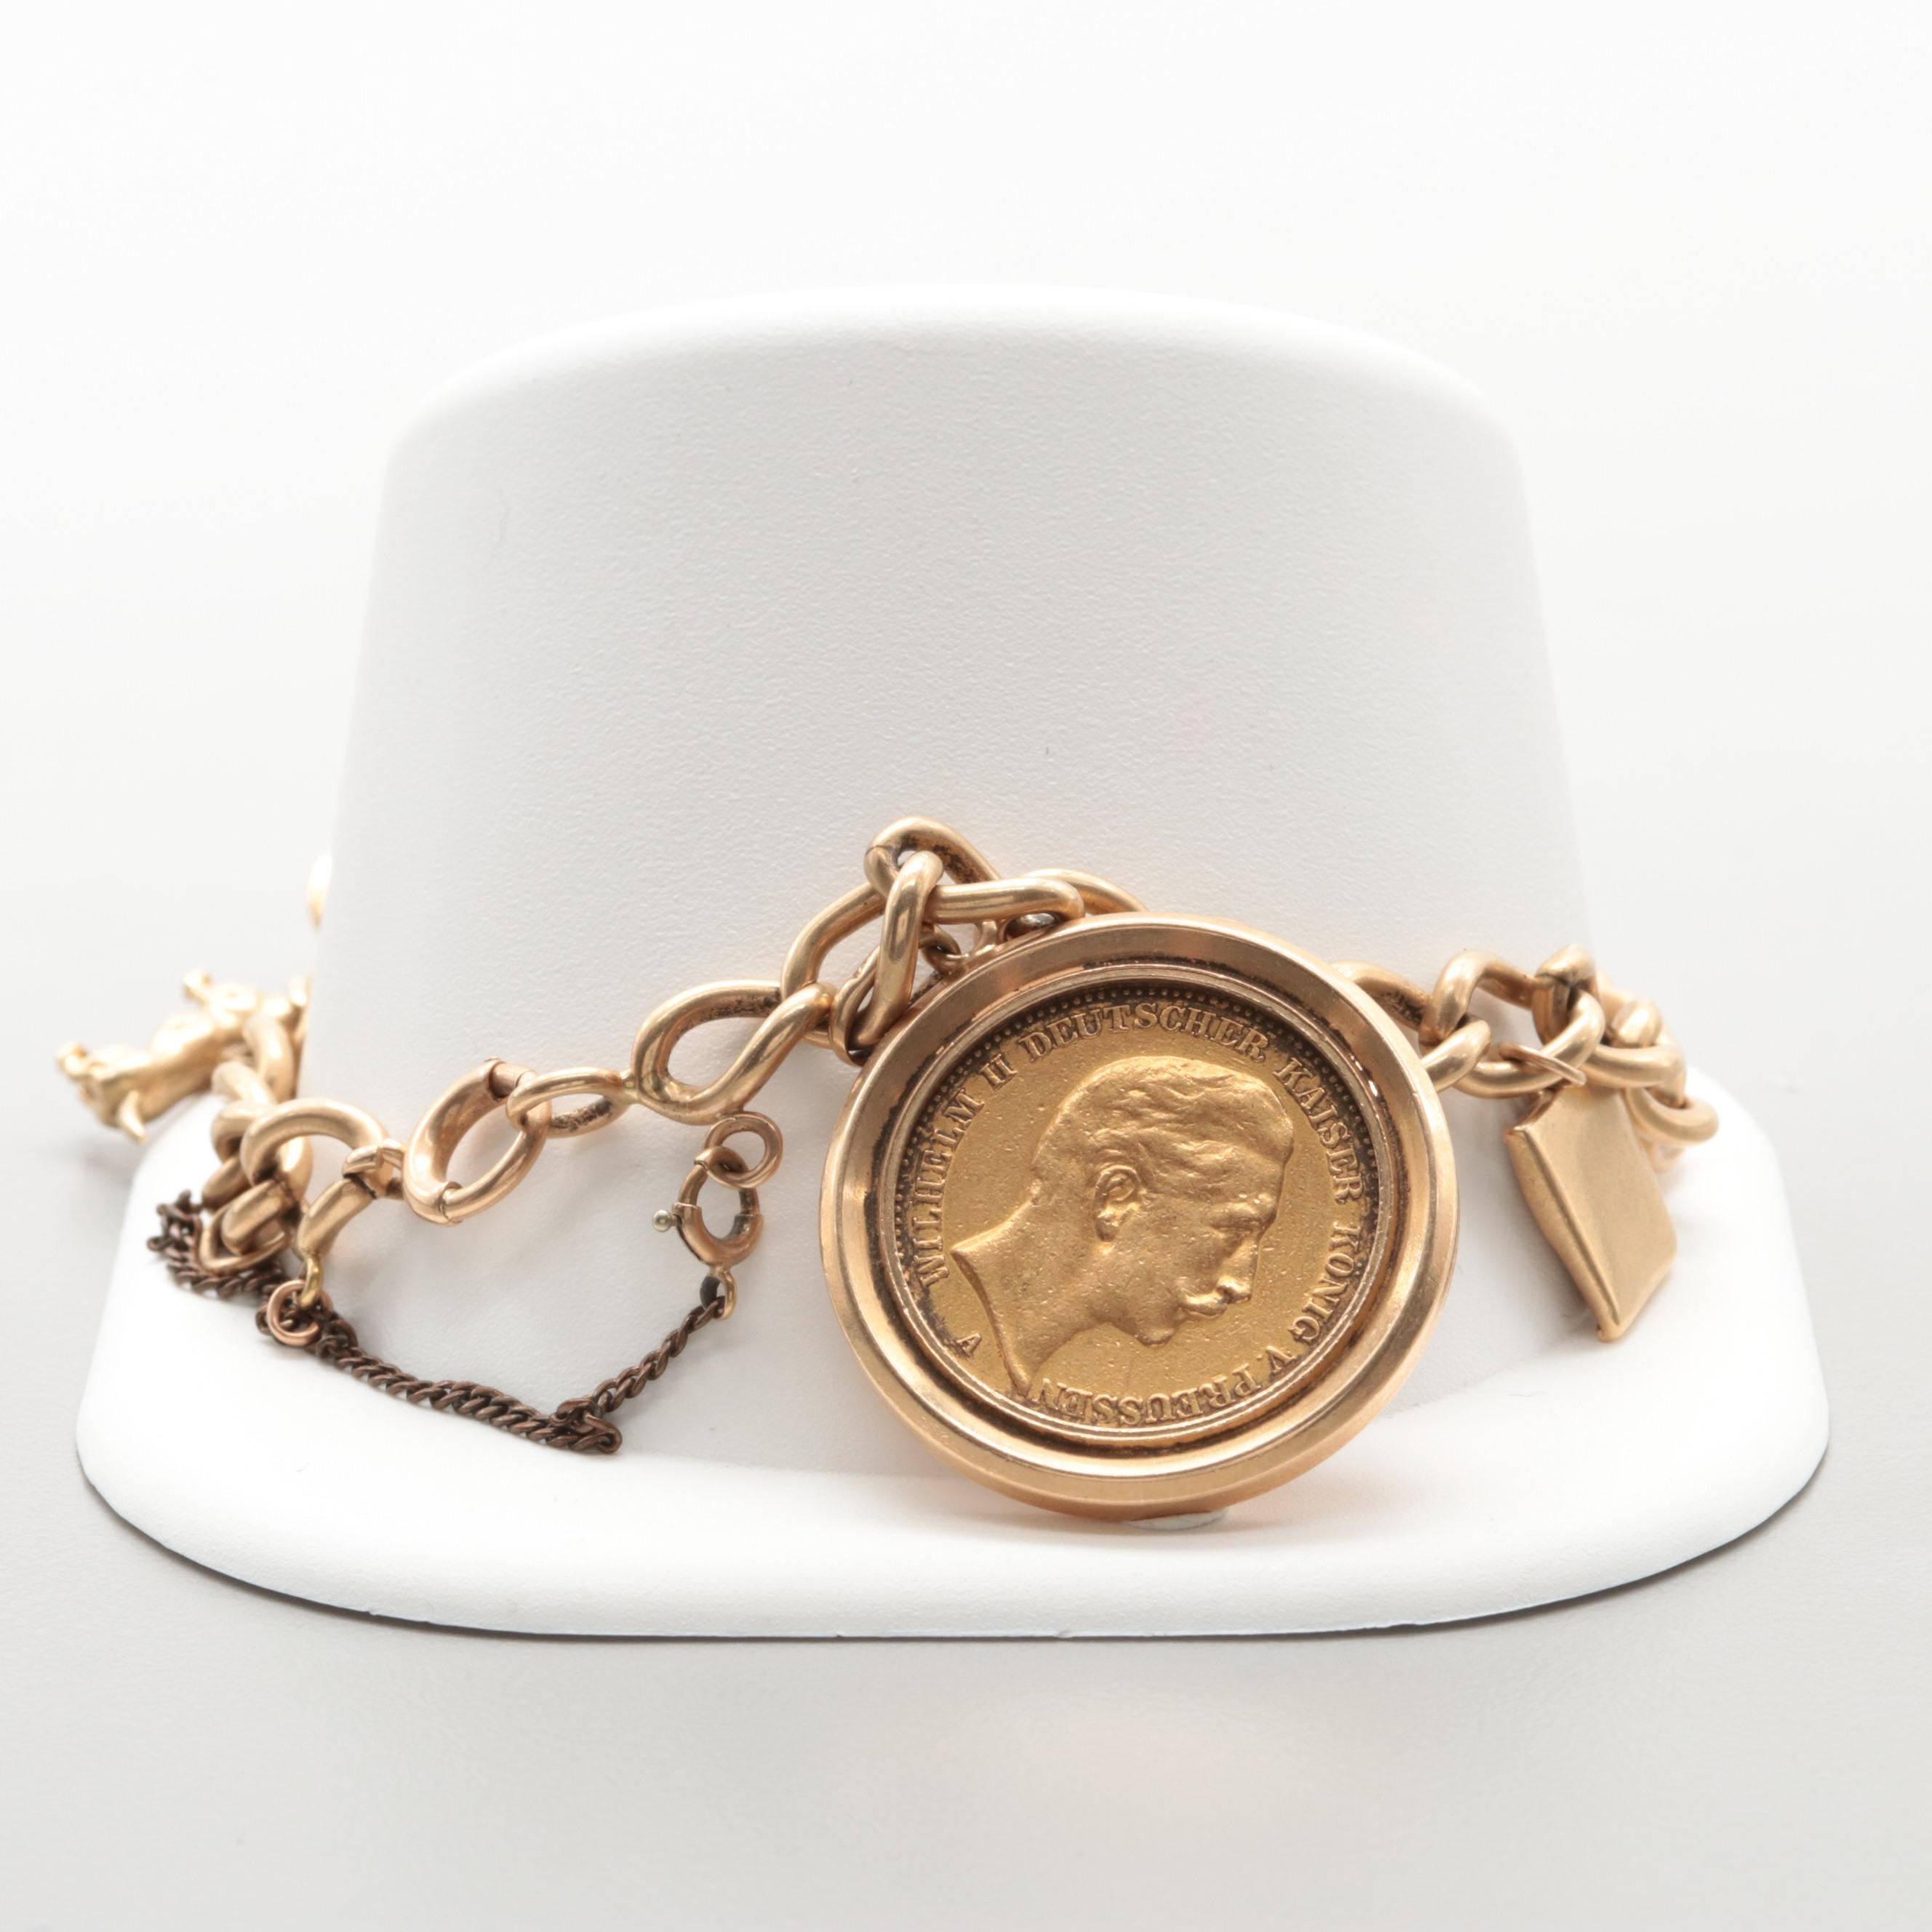 14K Yellow Gold Charm Bracelet with 1896 Prussia 20 Mark Gold Coin